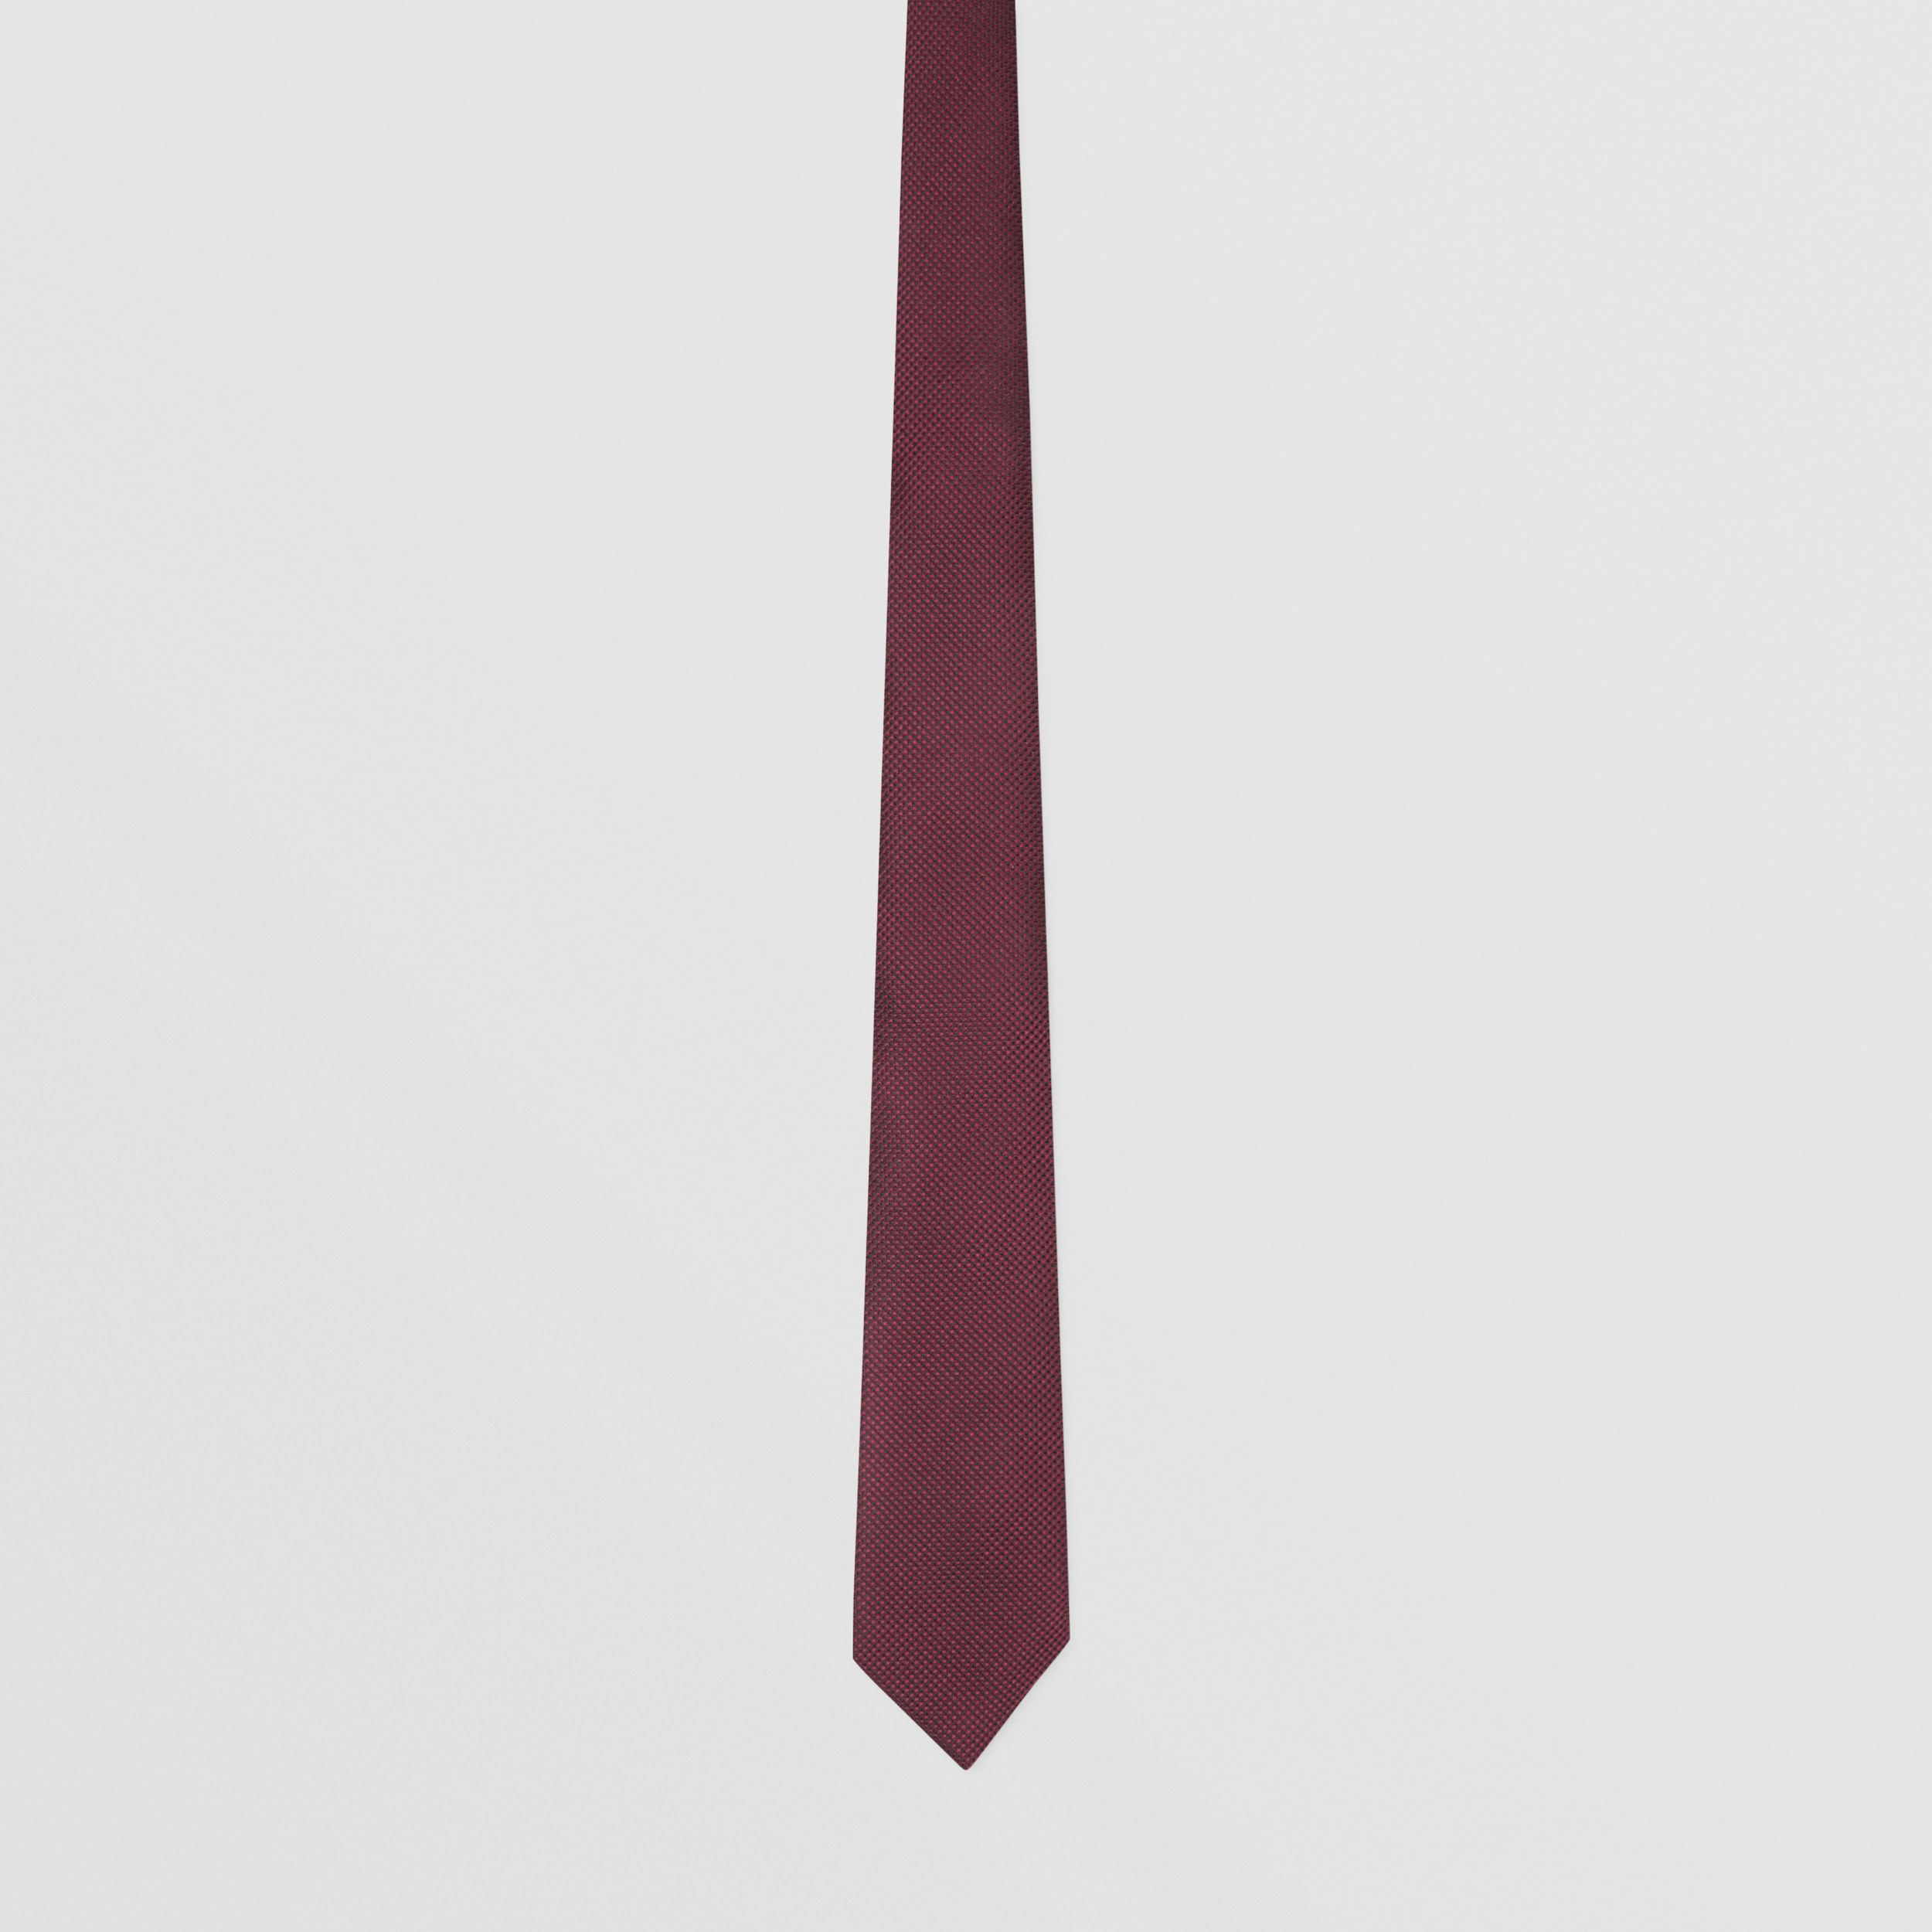 Classic Cut Woven Silk Tie in Dark Plum - Men | Burberry Hong Kong S.A.R. - 4